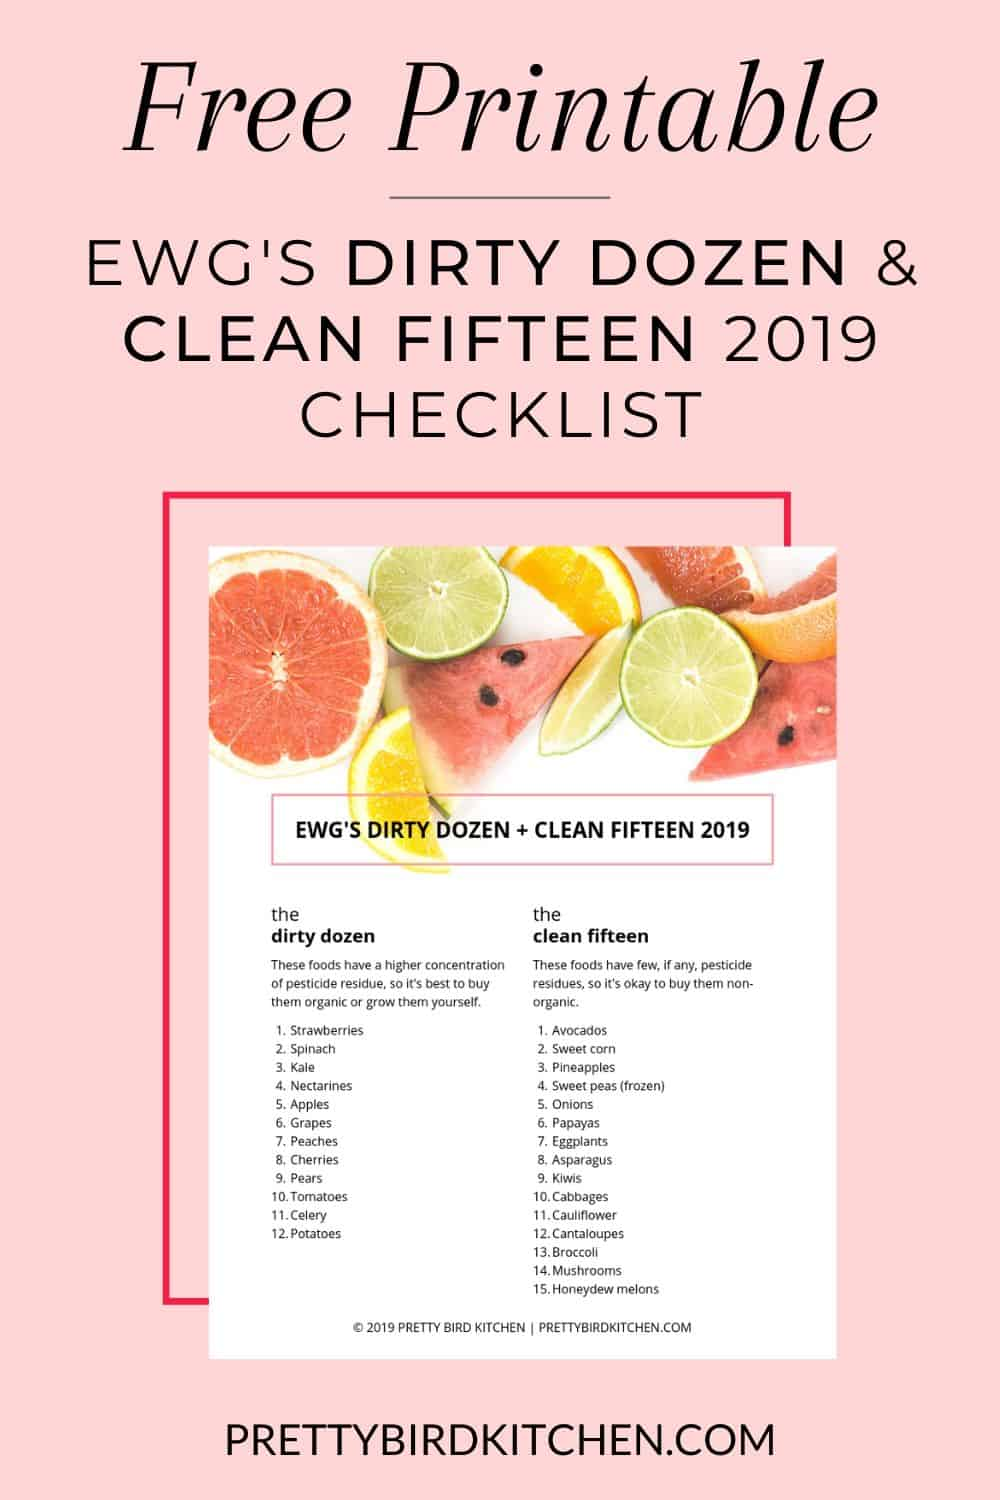 Free Printable Dirty Dozen and Clean Fifteen 2019